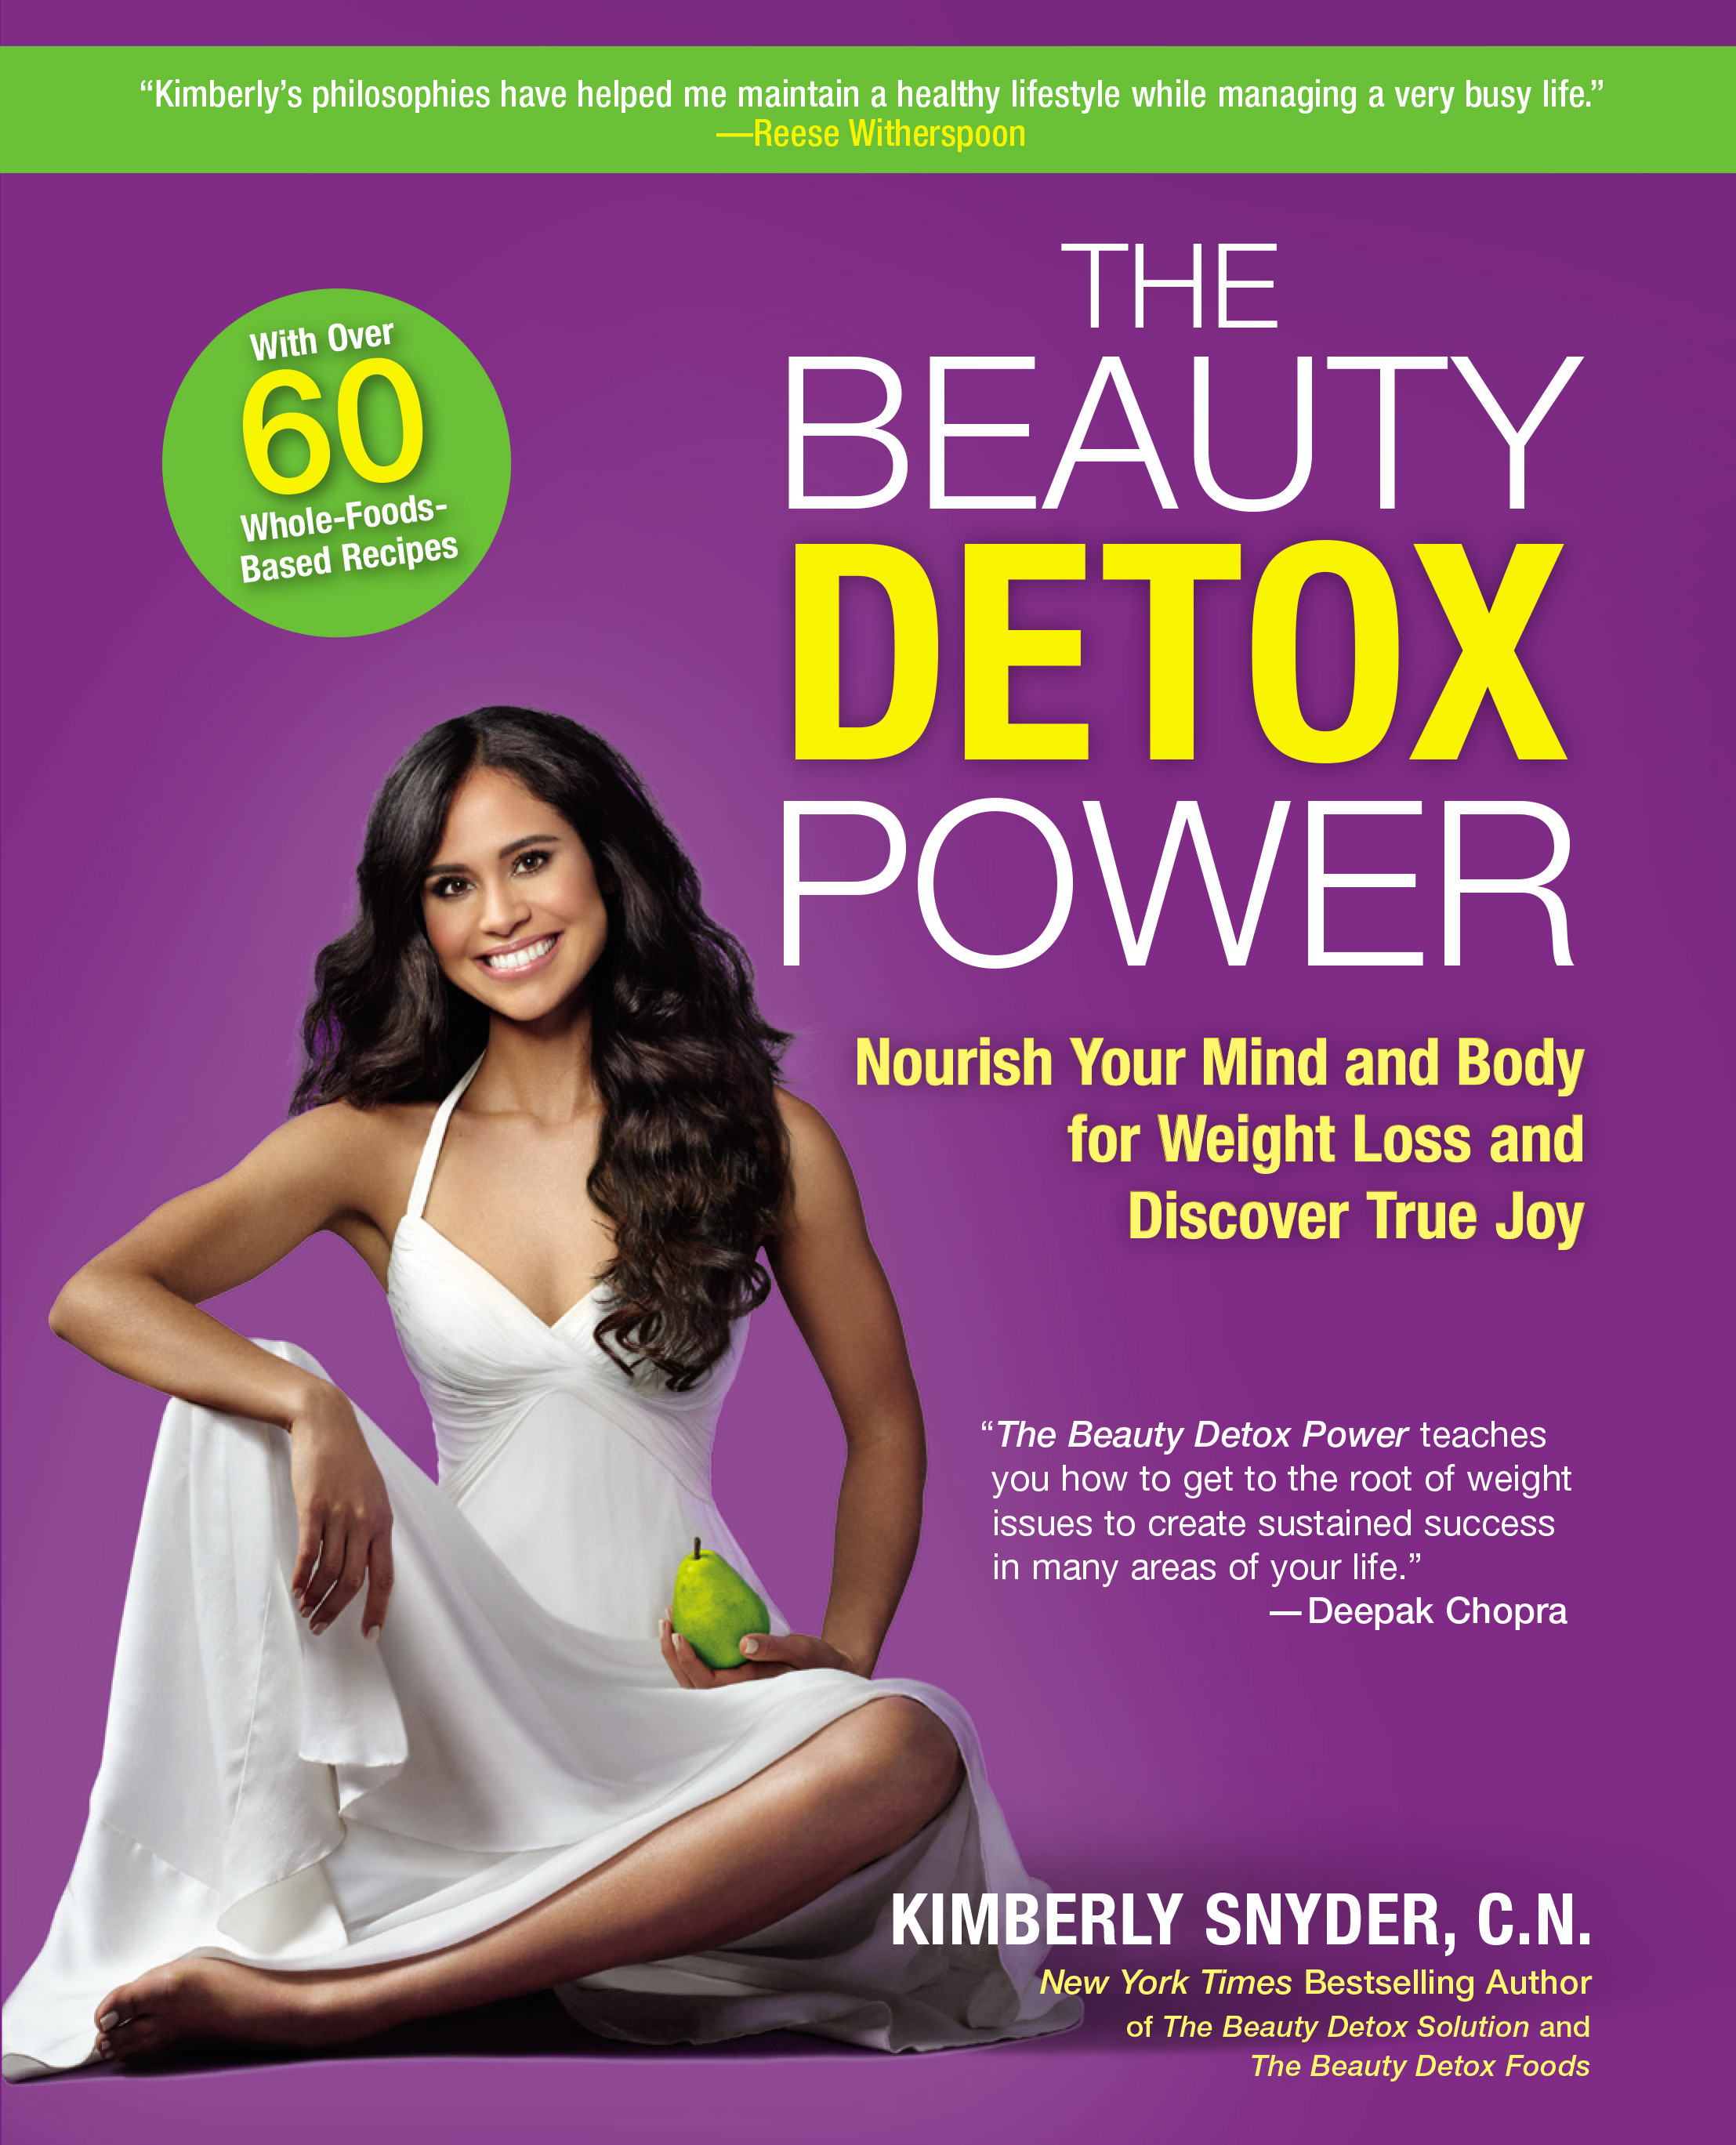 The Beauty Detox Power, $19, at amazon.com